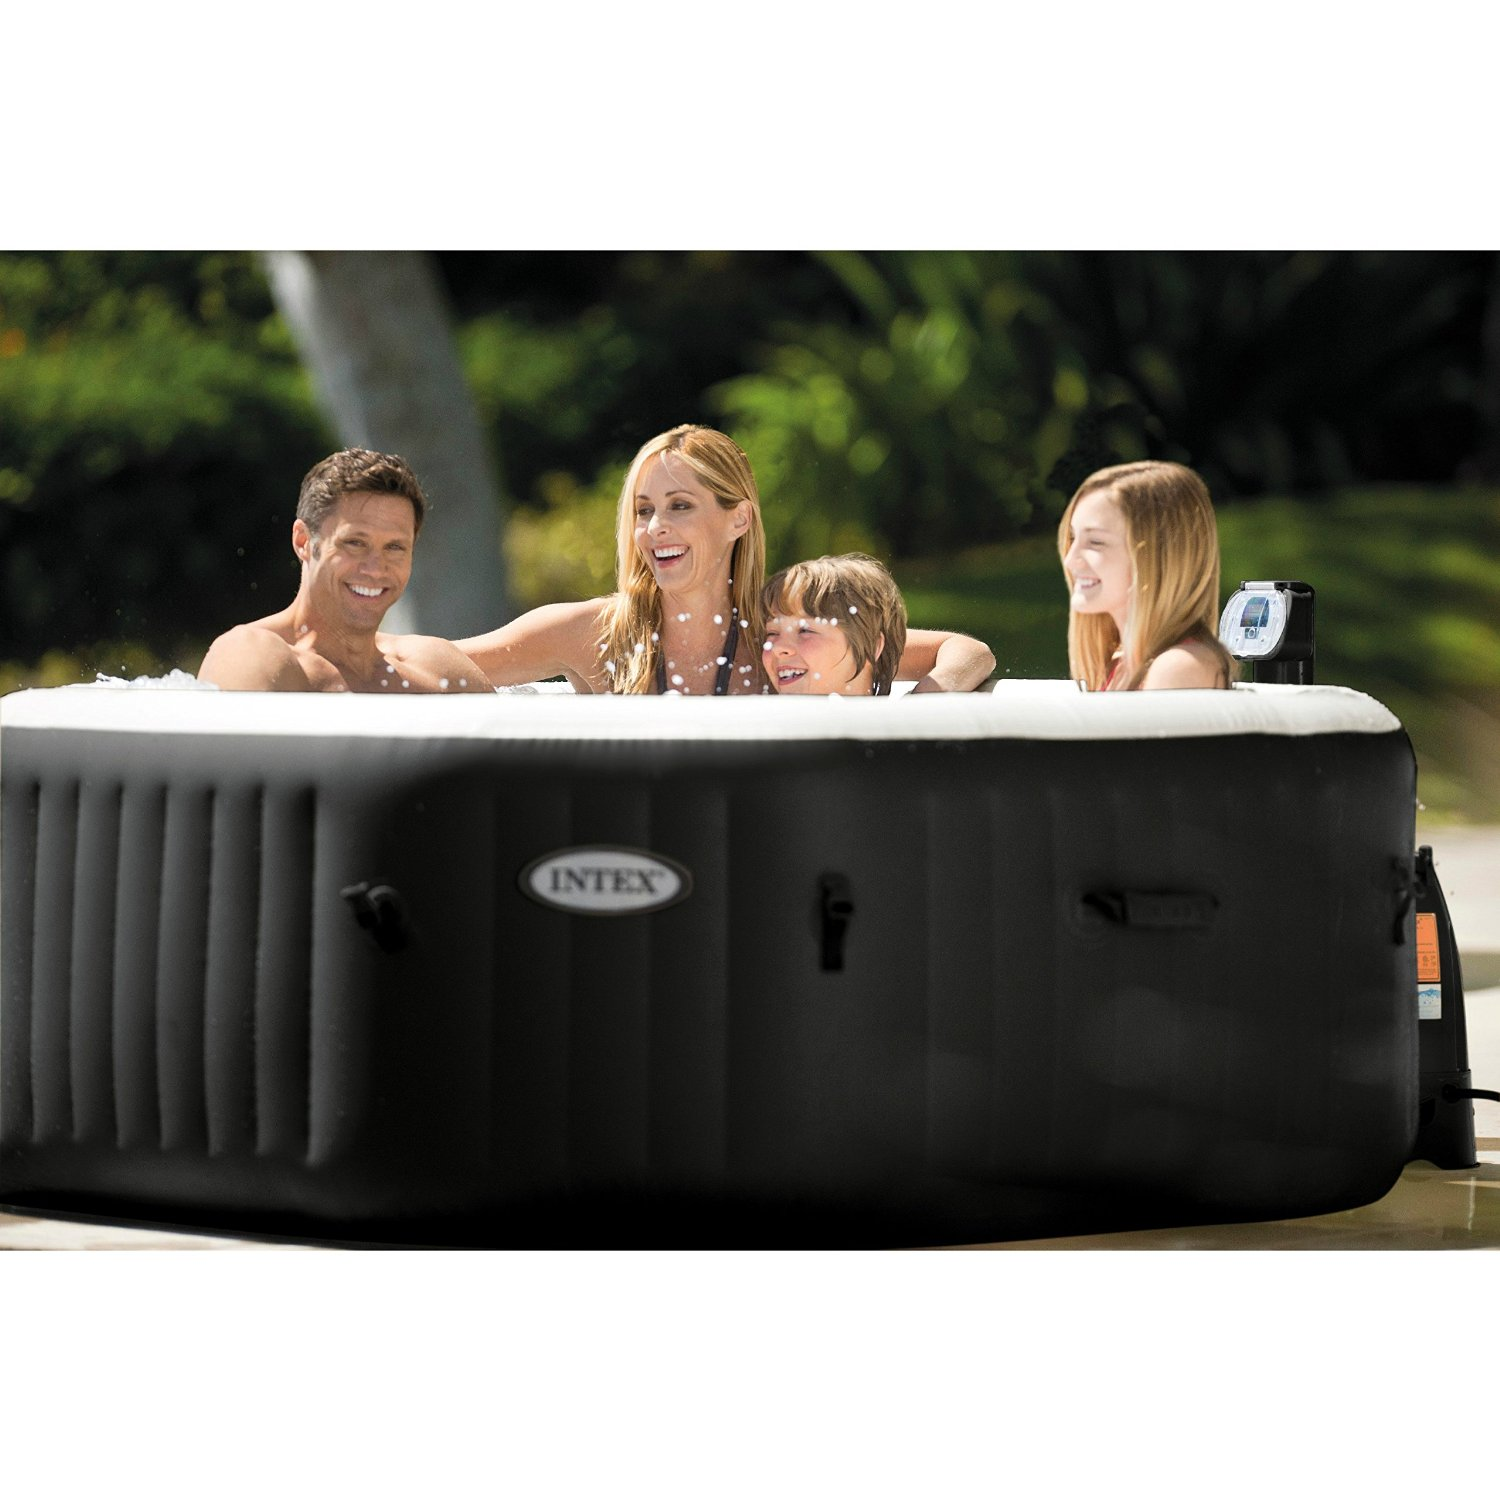 intex purespa jet and bubble deluxe portable hot tub. Black Bedroom Furniture Sets. Home Design Ideas